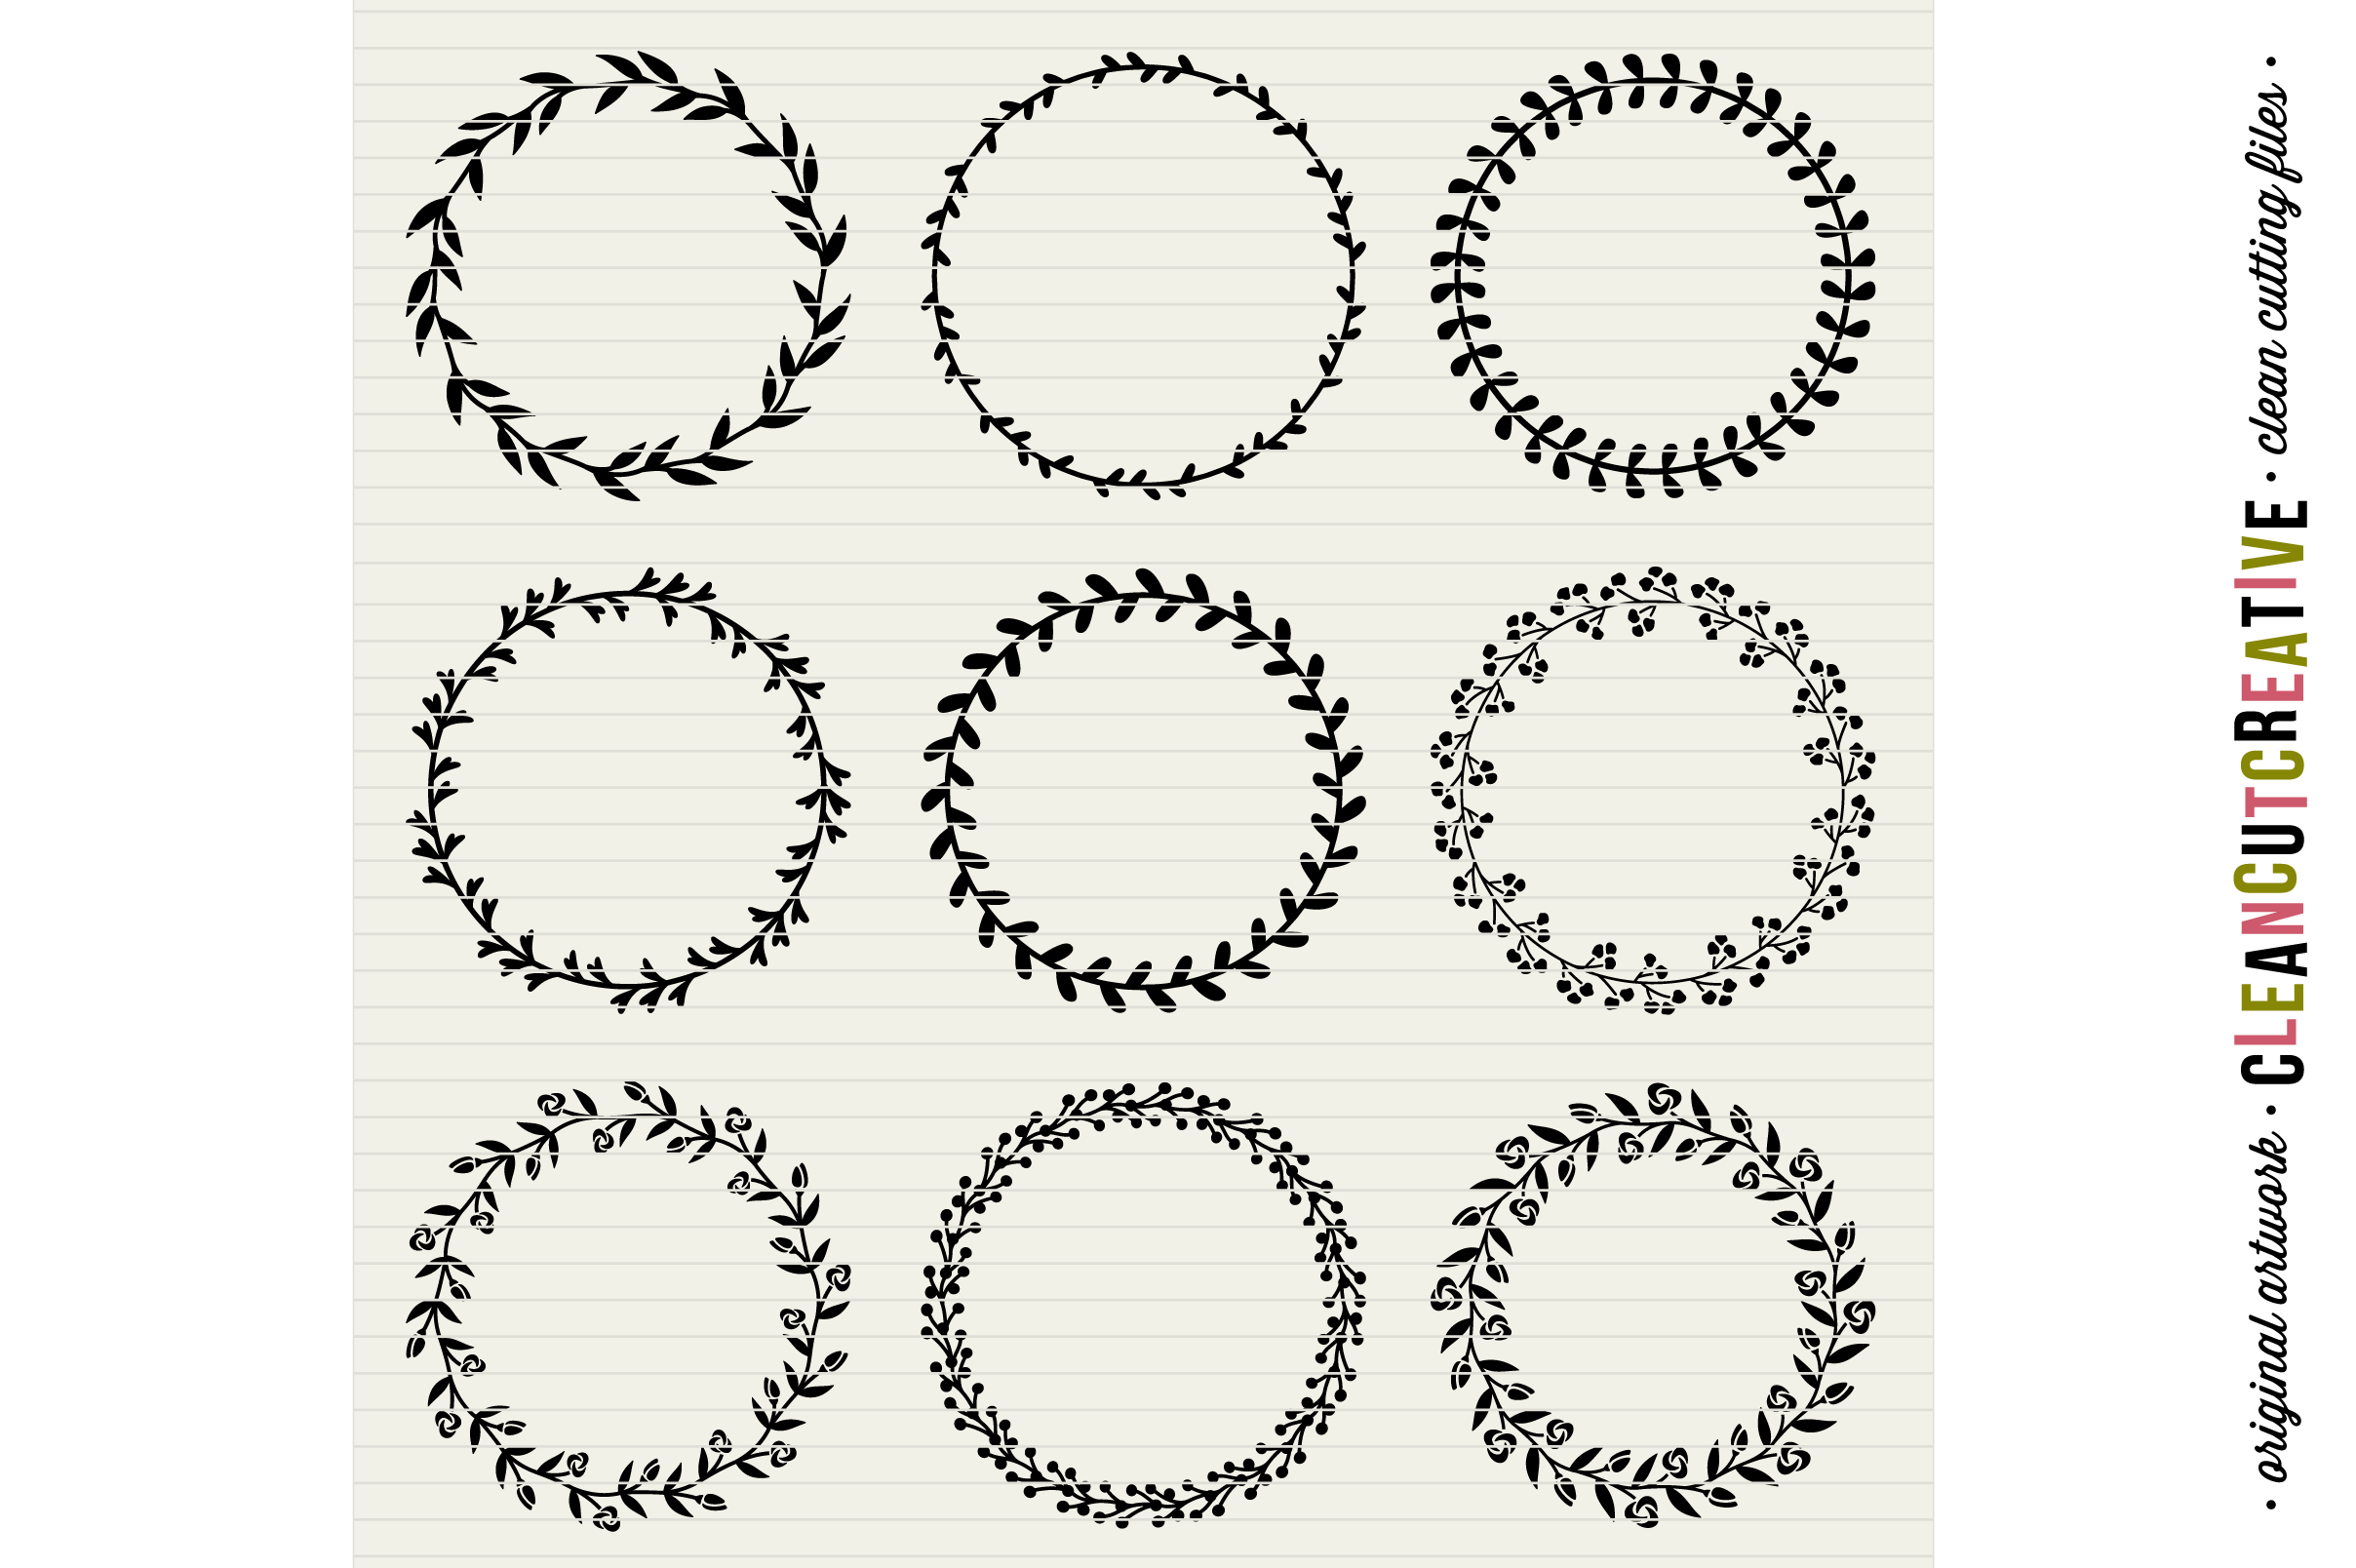 15 svg FLORAL WREATHS floral leaf circleframes - SVG DXF EPS PNG - for Cricut and Silhouette Cameo - clean cutting digital files example image 3